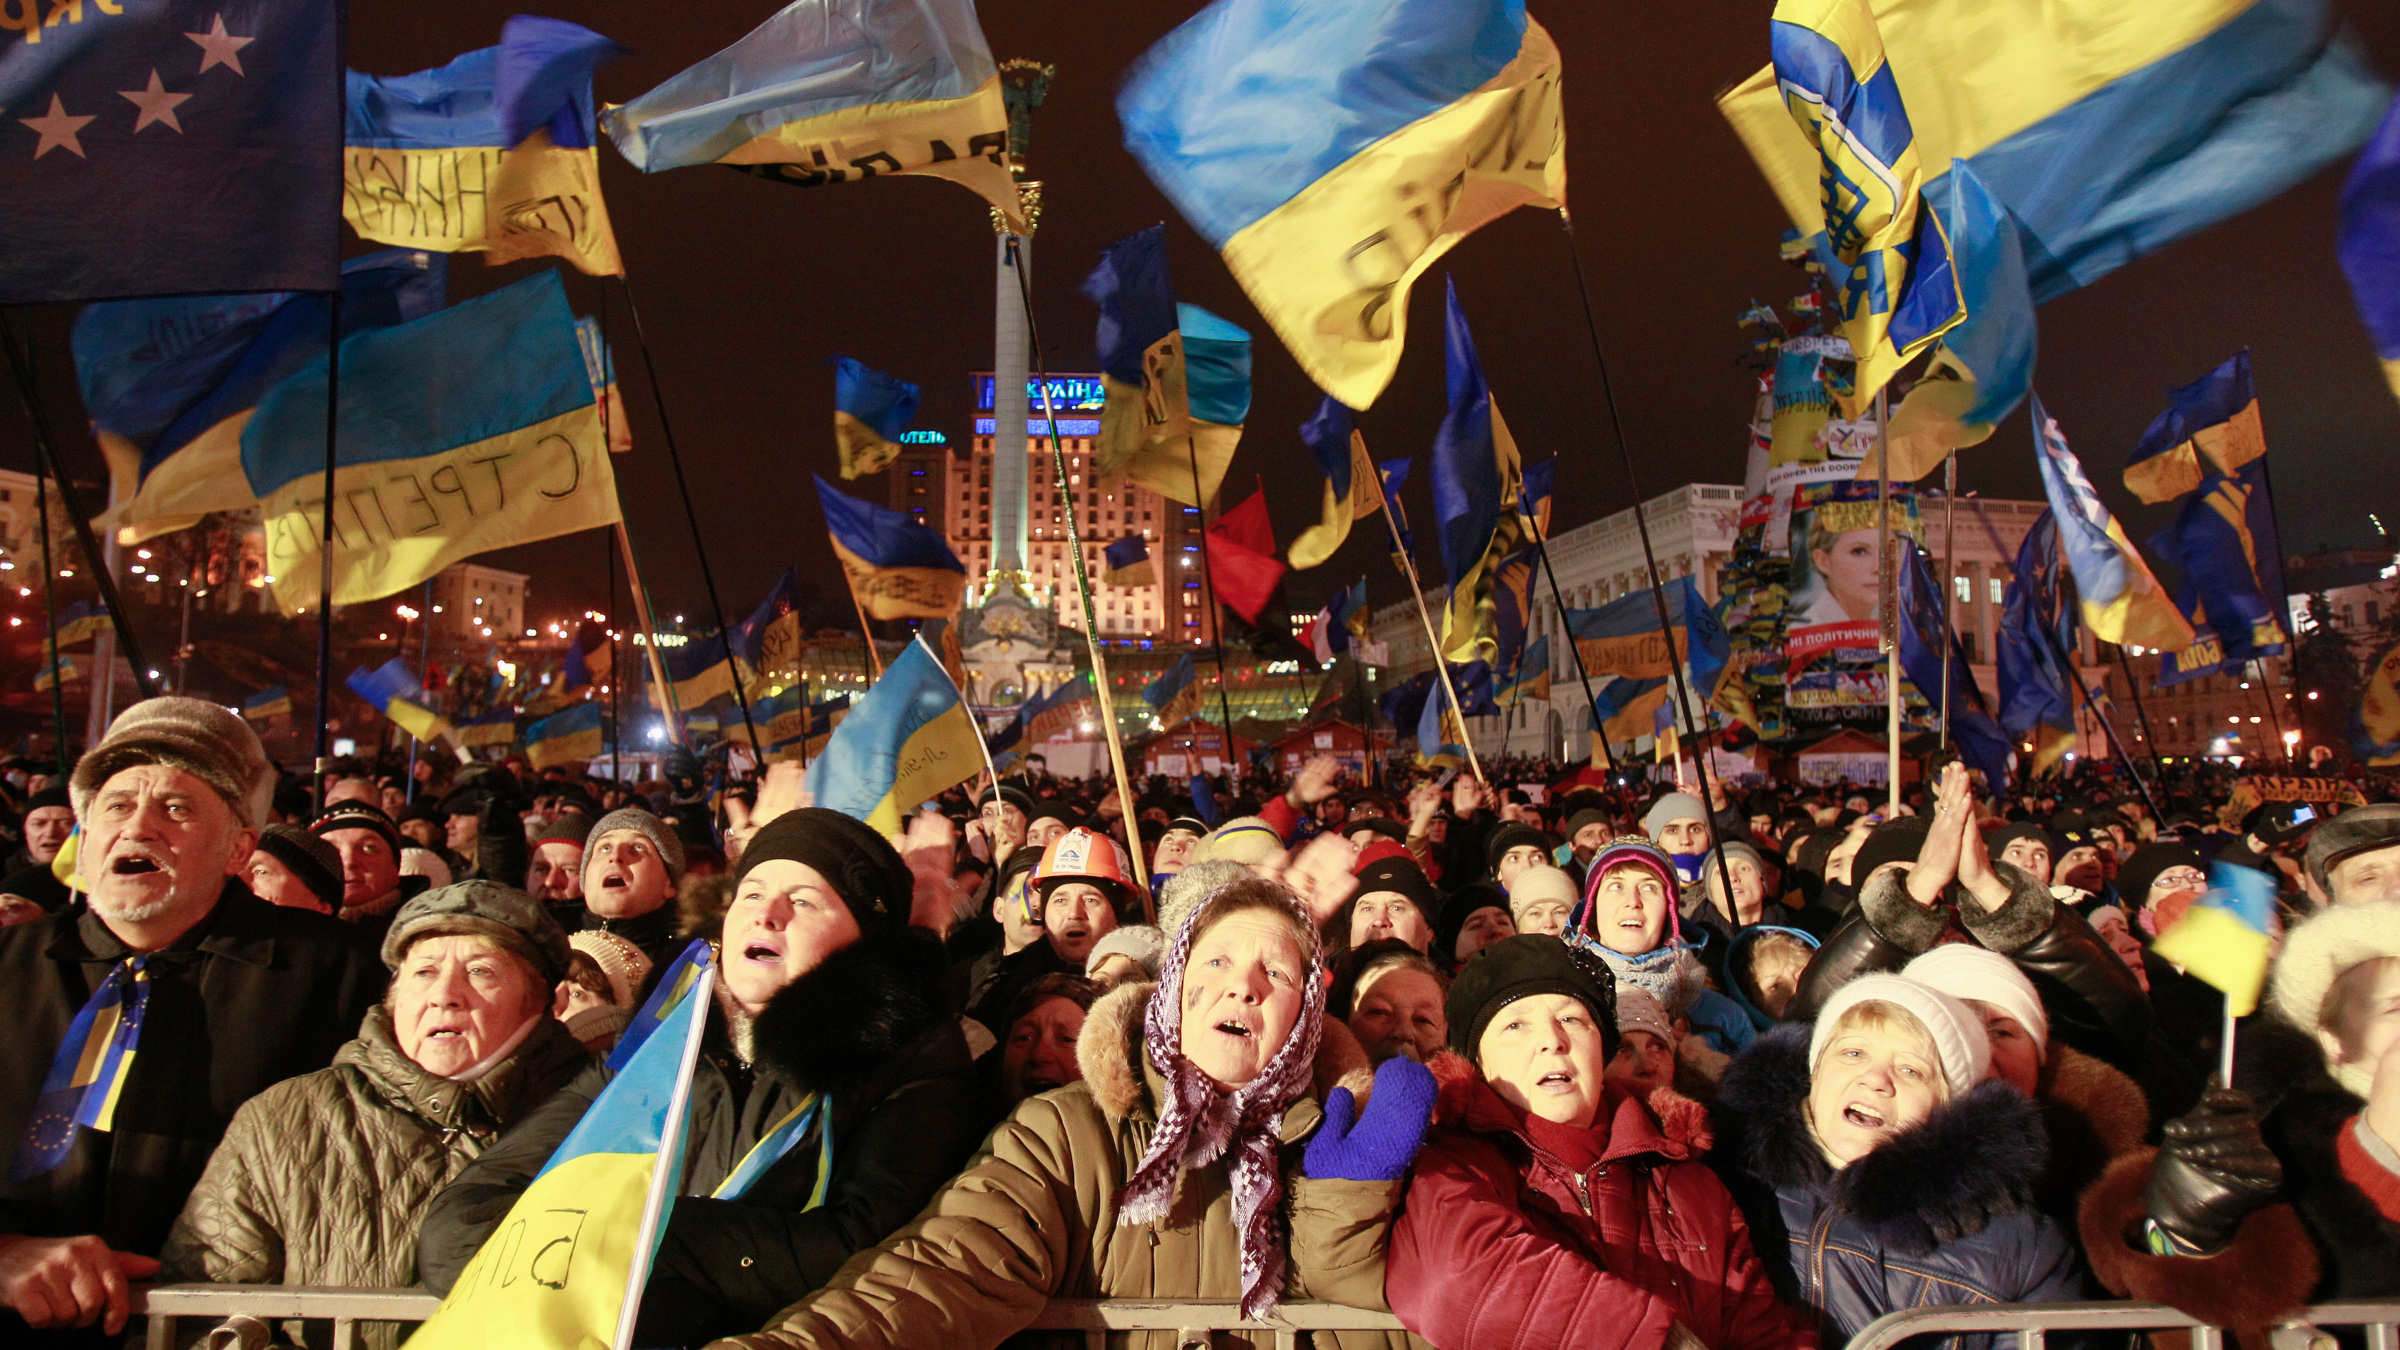 Pro-European integration protesters attend a rally in Maidan Nezalezhnosti on Independence Square in central Kiev, December 17, 2013. Russia threw Ukraine an economic lifeline on Tuesday, agreeing to buy $15 billion (£9.23 billion) of Ukrainian debt and to reduce the price its cash-strapped neighbour pays for vital Russian gas supplies by about one-third.